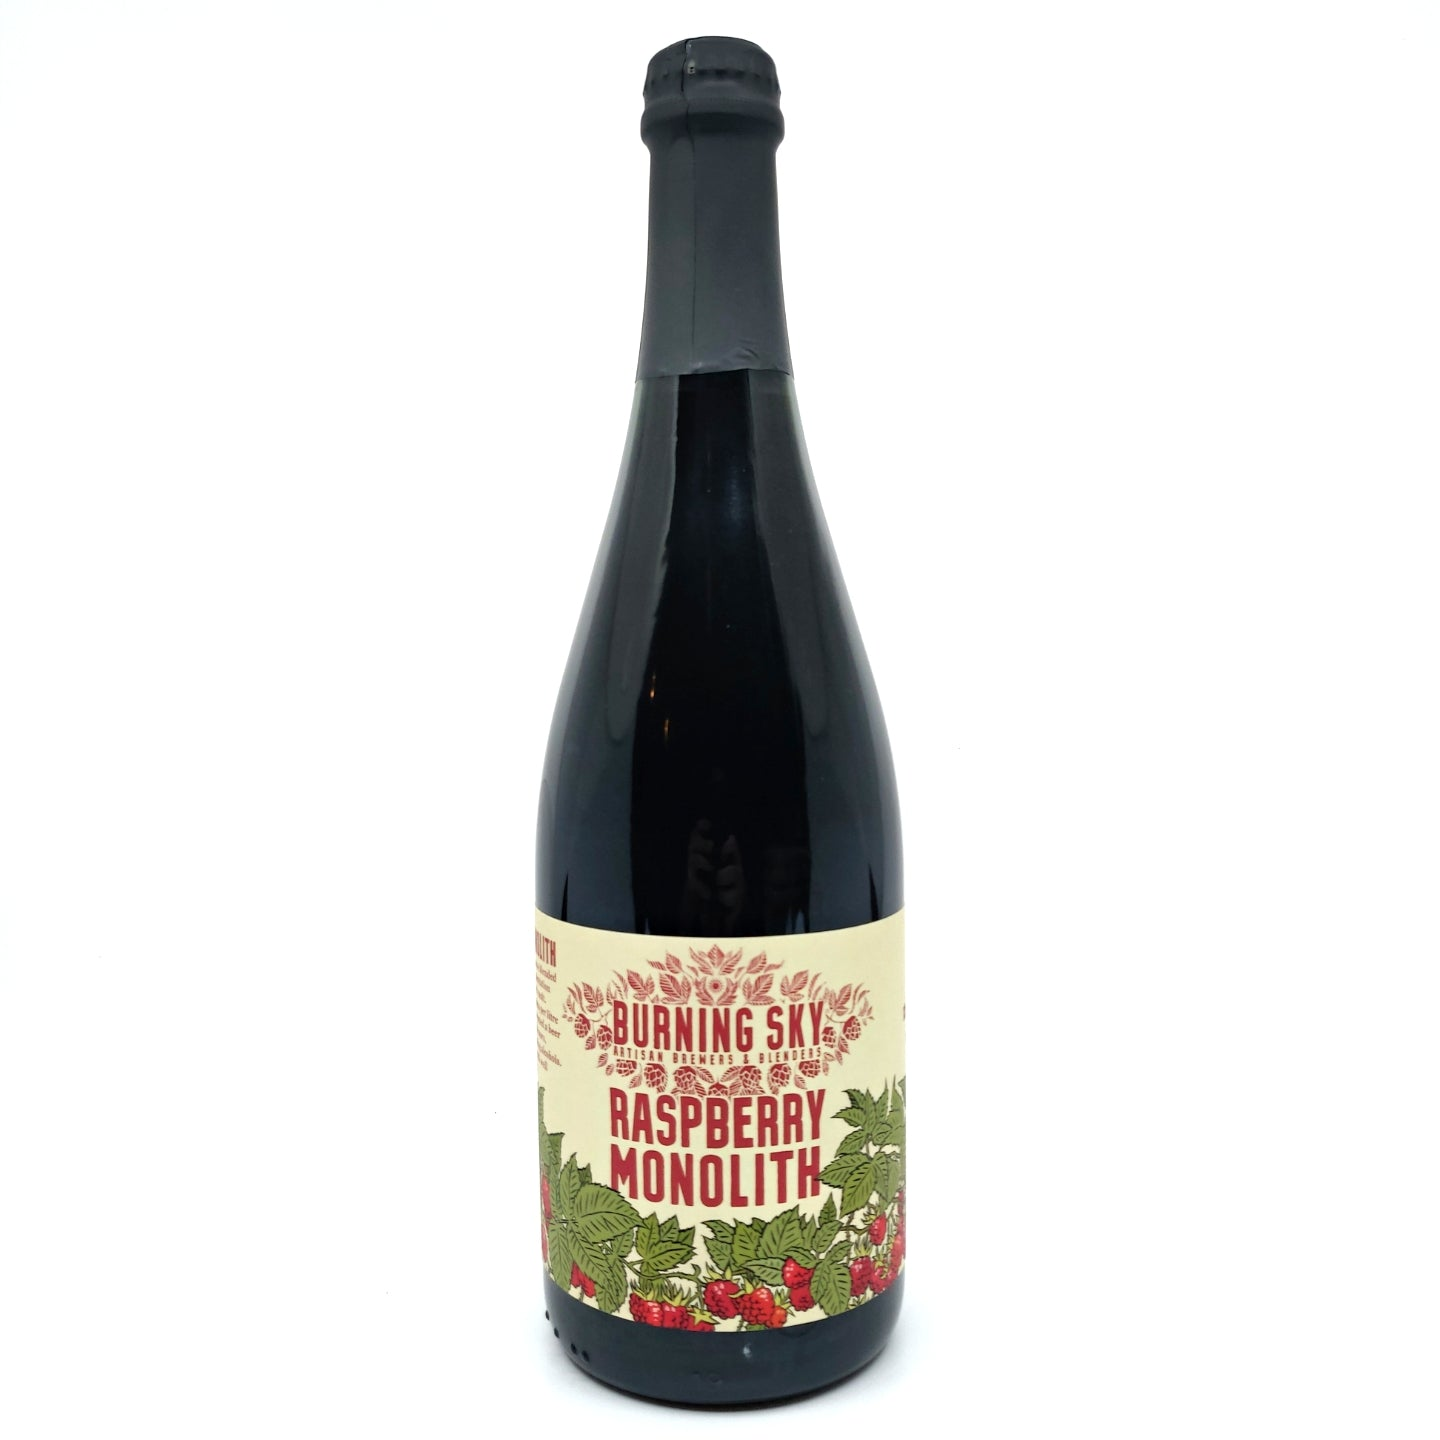 Burning Sky Raspberry Monolith Barrel Aged Black Beer 7.8% (750ml)-Hop Burns & Black